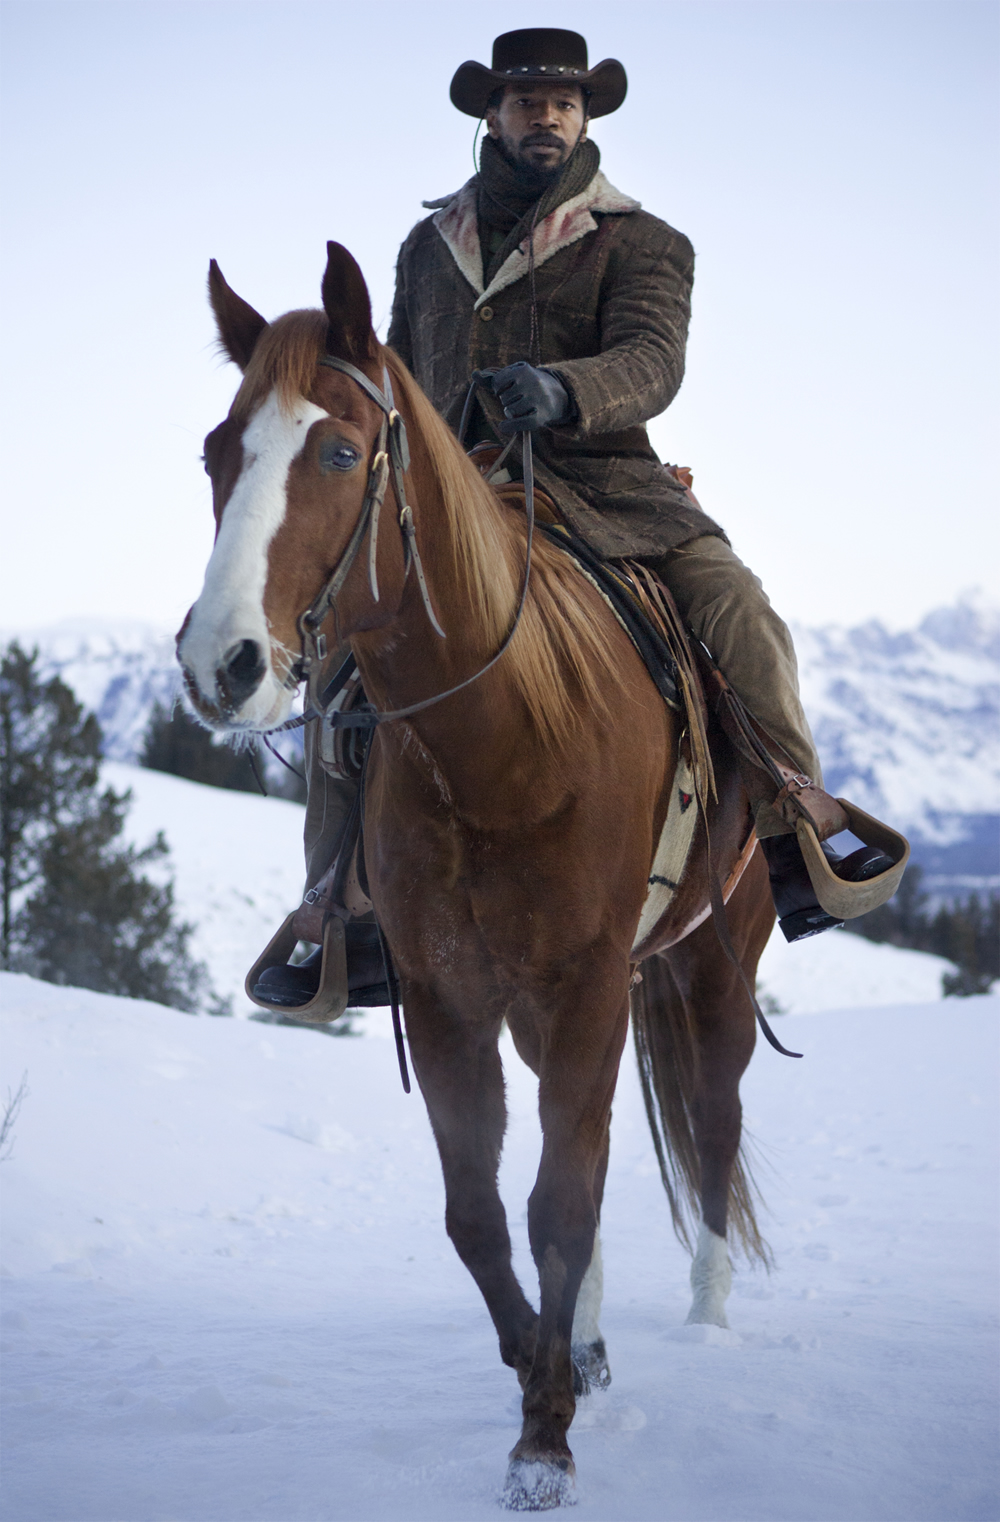 Horses In The Fall Wallpaper New Batch Of Django Unchained Stills Reveal Don Johnson